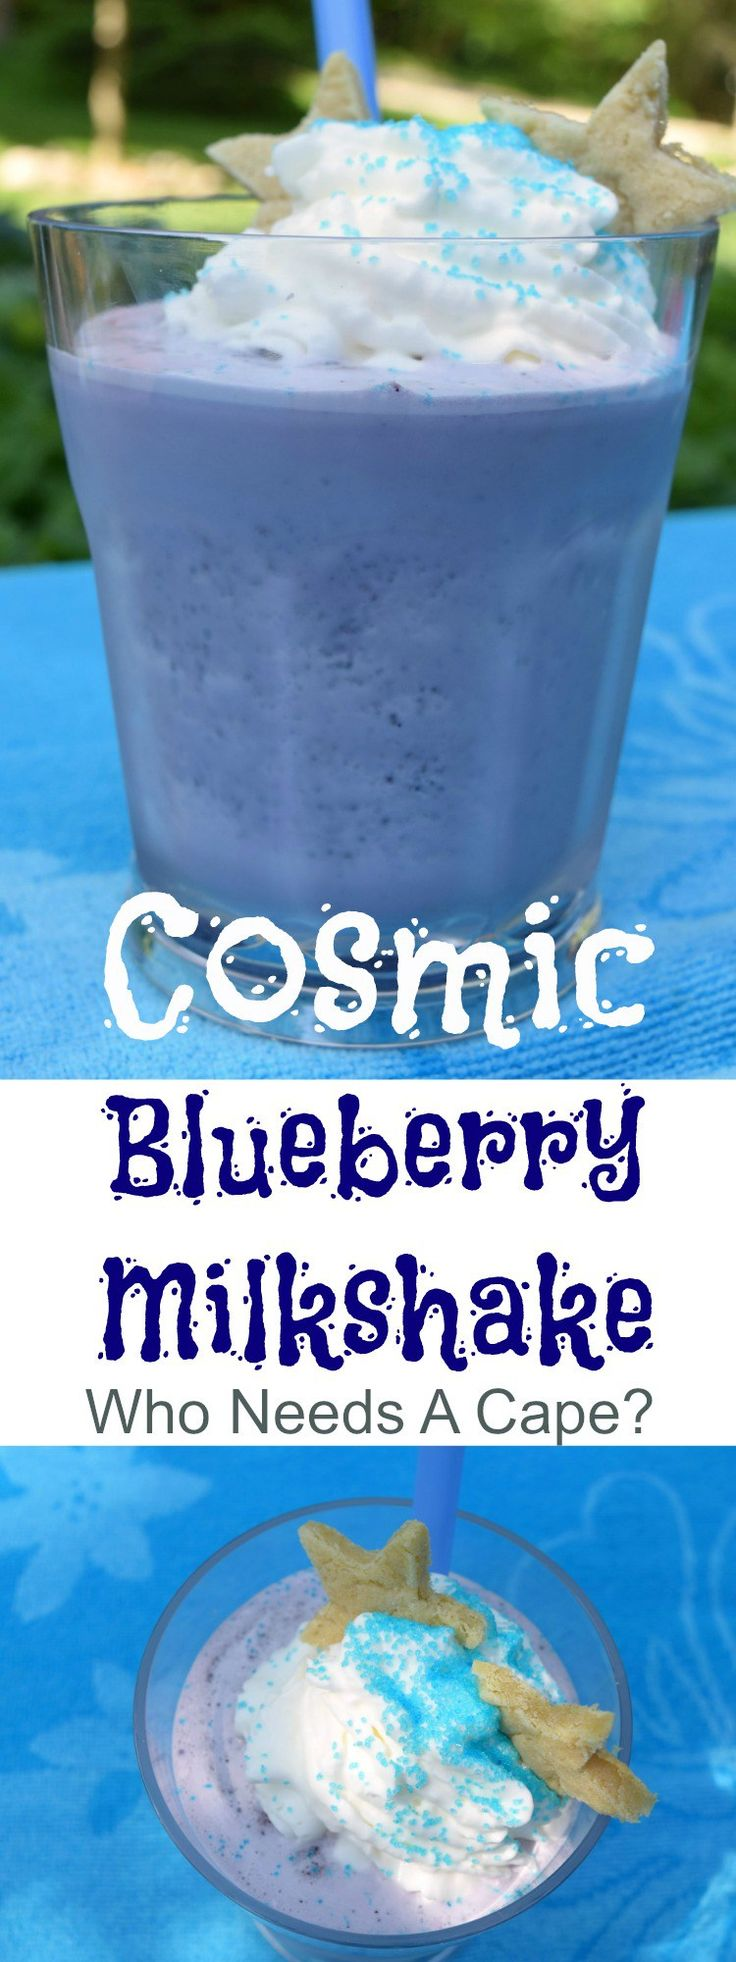 Your kids will go out of this world crazy for a Cosmic Blueberry Milkshake! Loaded with yummy berries and ice cream, this is a summer favorite. Plus find out what delicious frozen food I'm serving alongside. | Who Needs A Cape? #ad #TysonLifesAnAdventure #ExploreIt